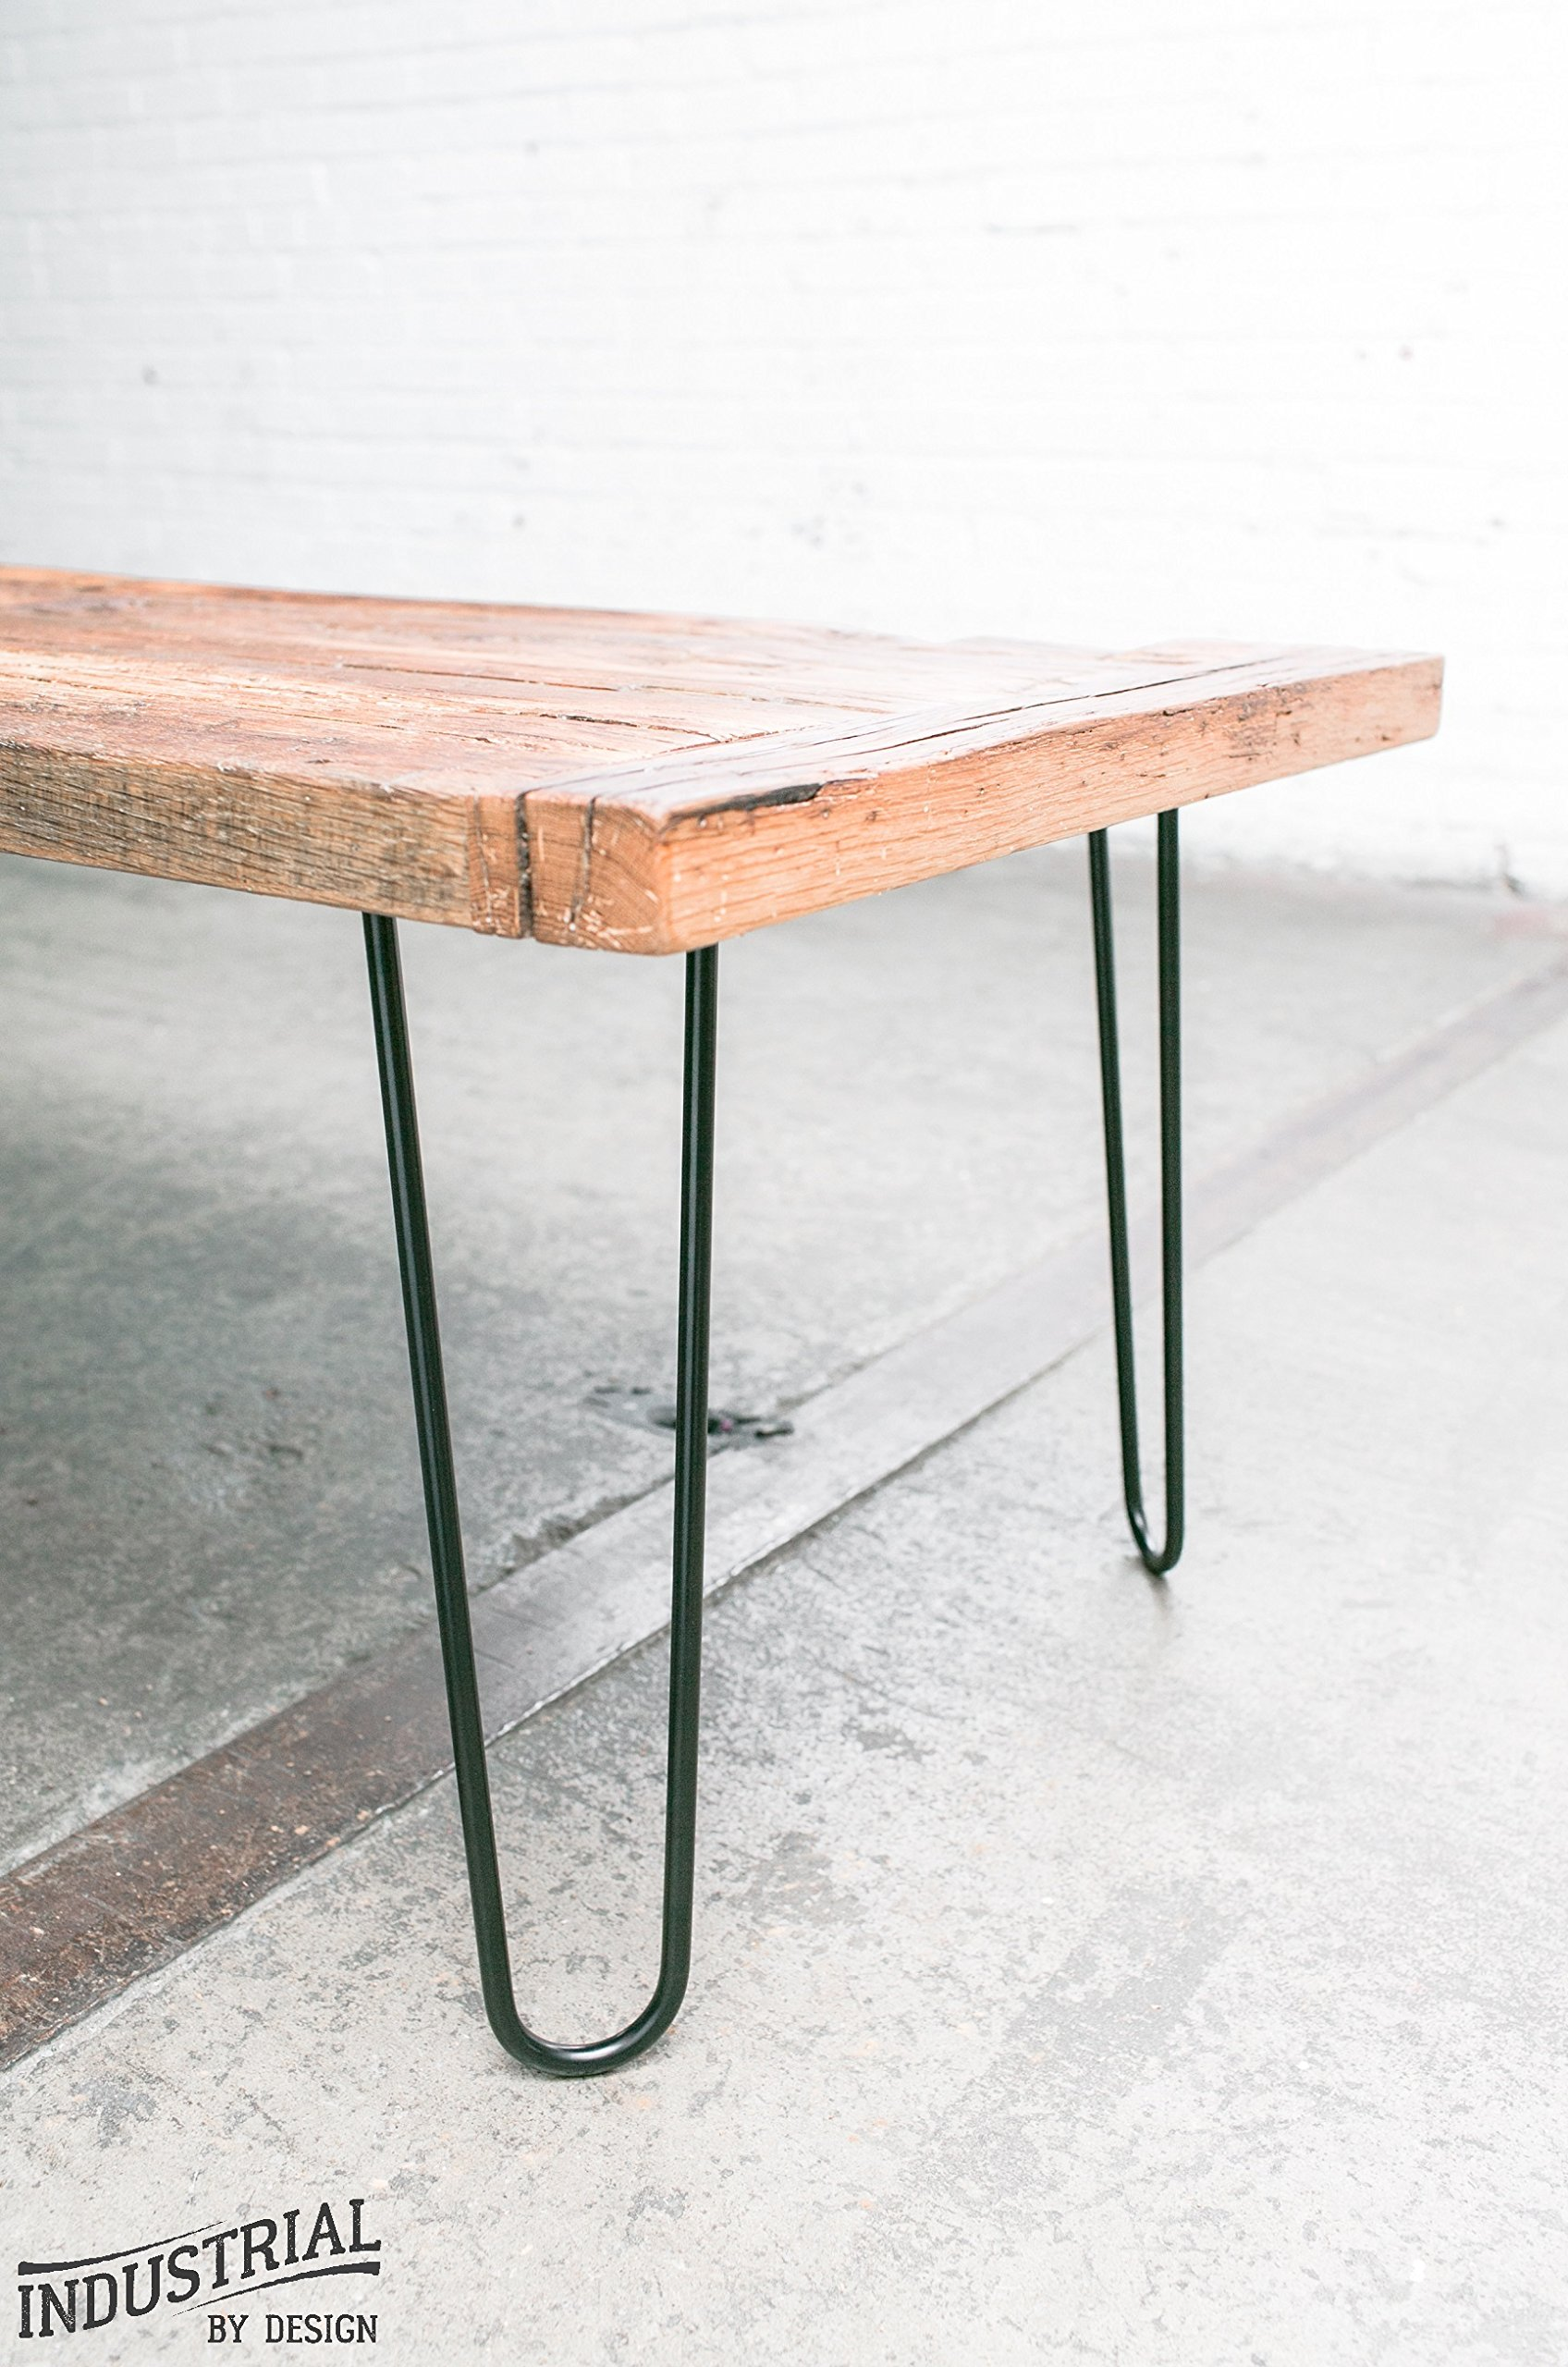 Industrial By Design - 12'' Hairpin Legs (Satin Black) - Industrial Strength - Mid Century Modern - Set of 4, Great for Table Legs